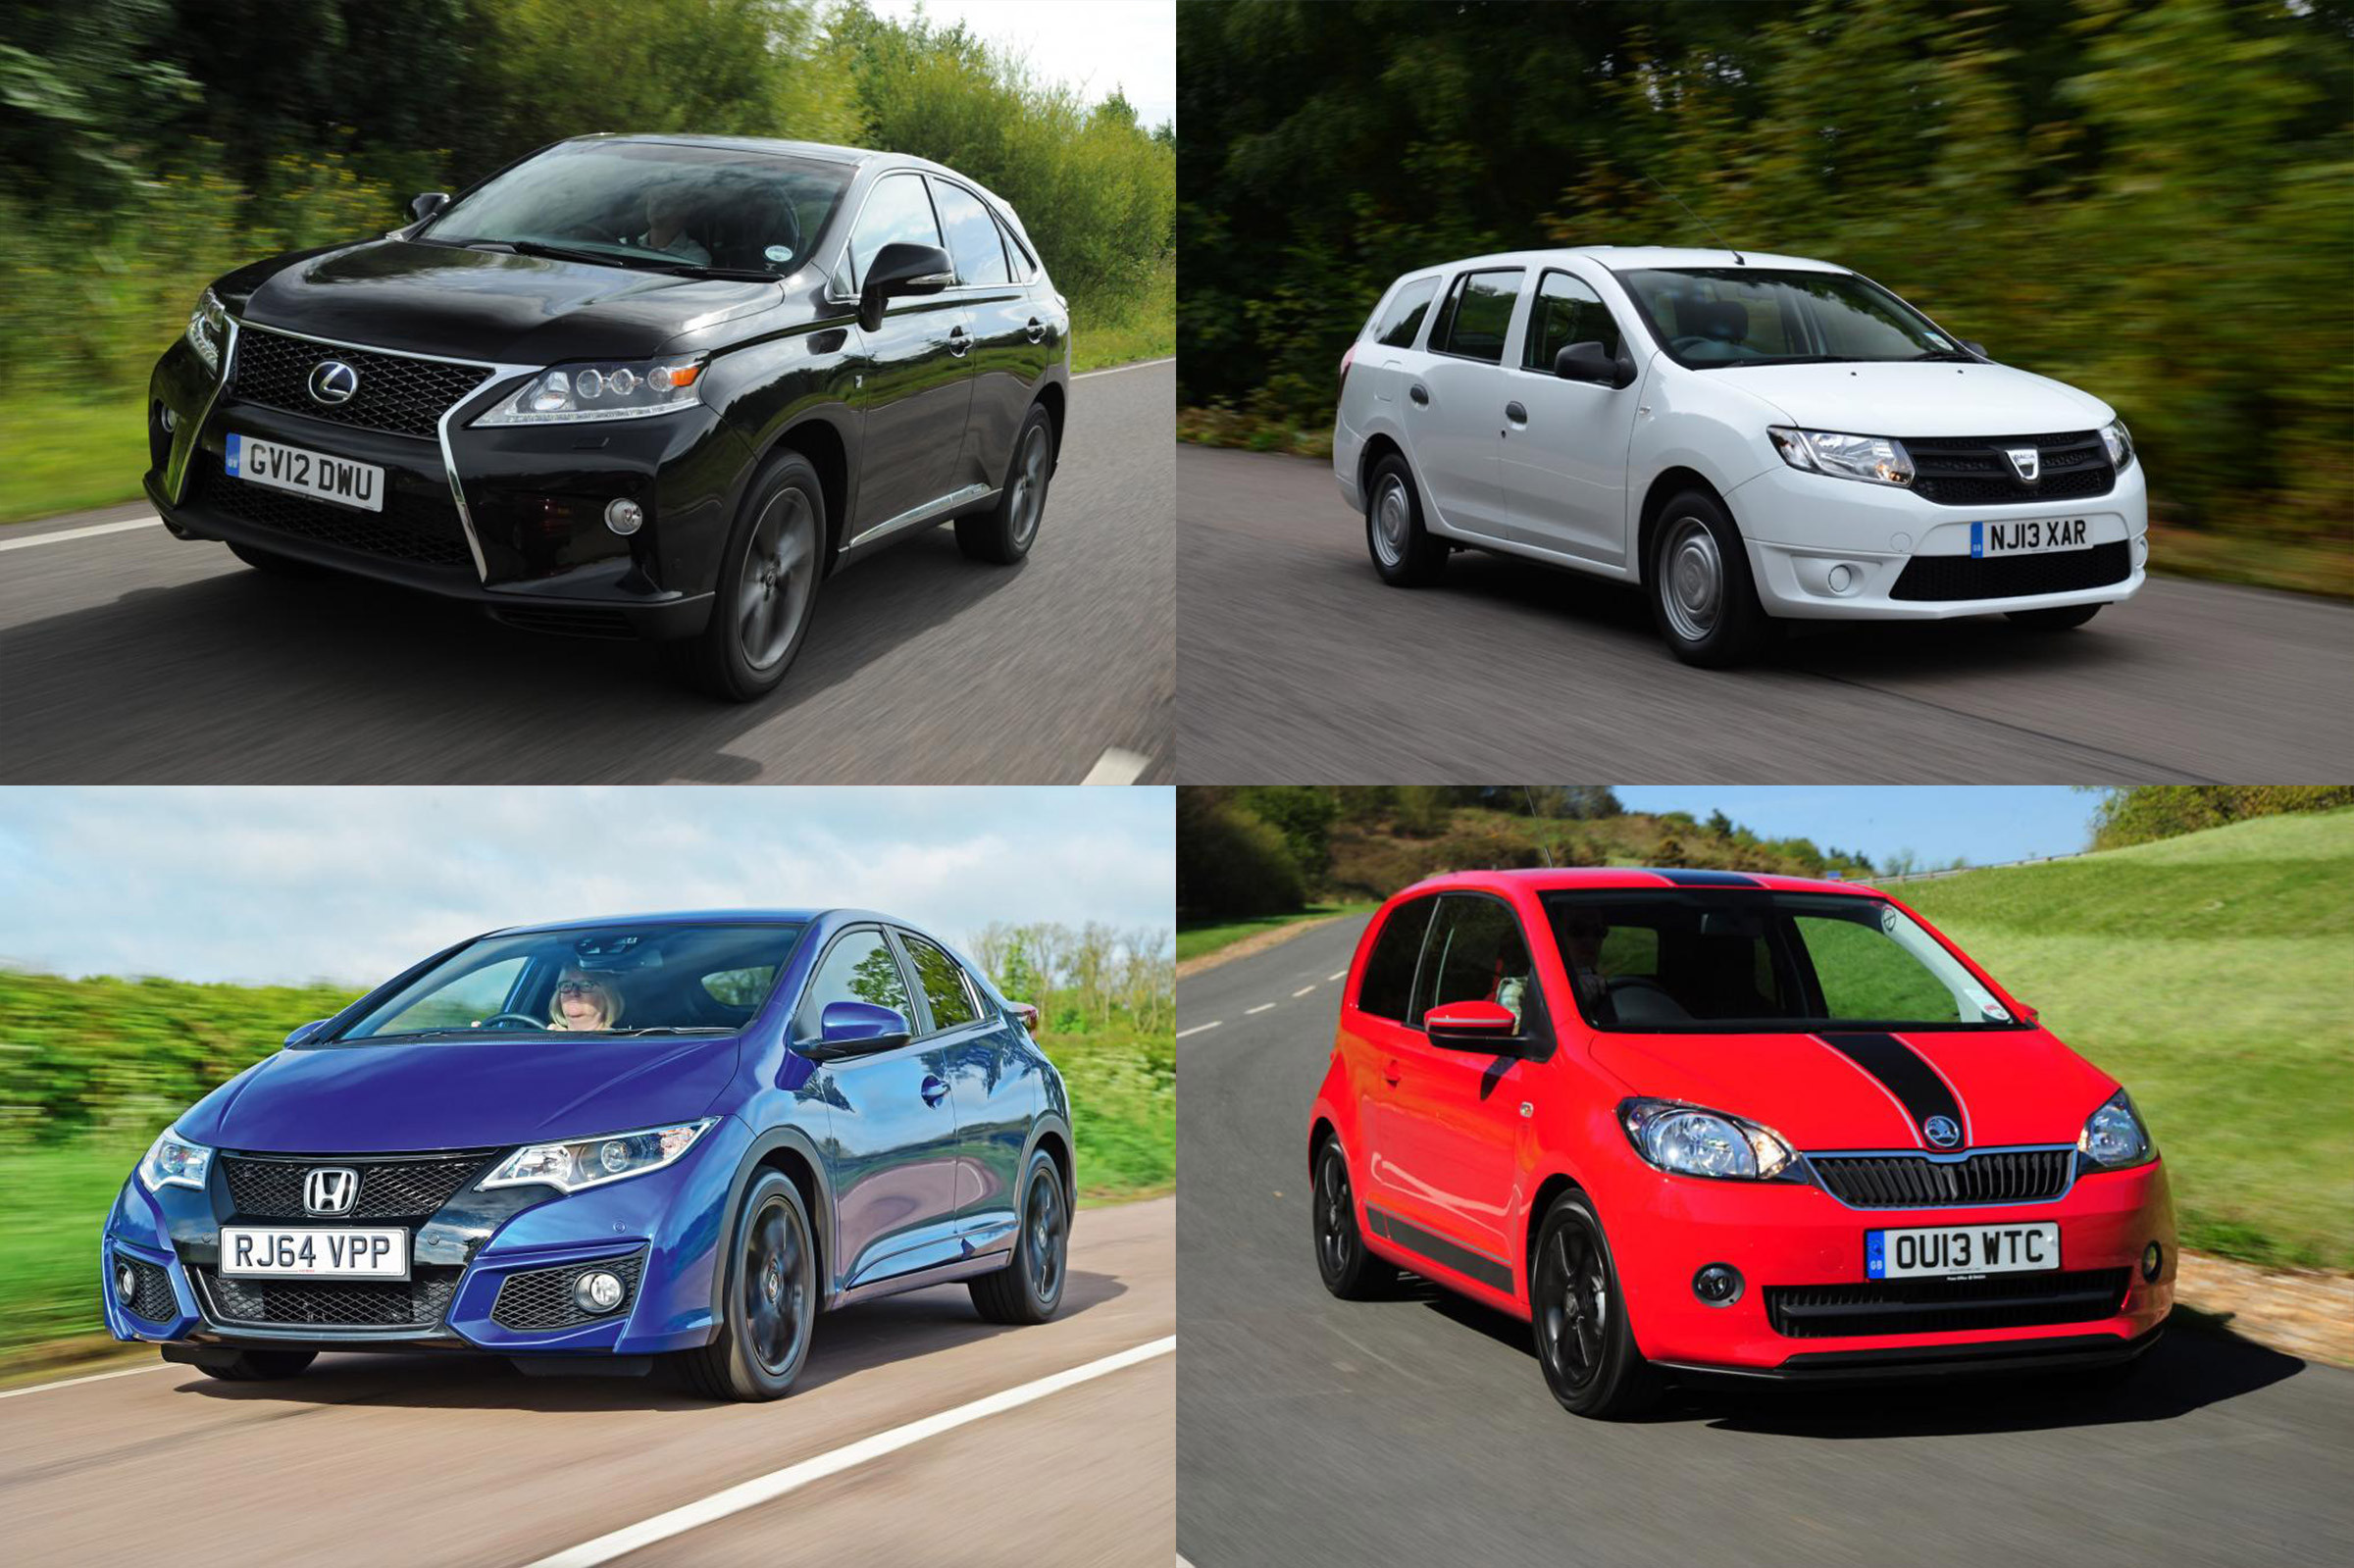 Car Lots Around Me Best Of Used Car Lots Around Me Inspirational Most Reliable Used Cars